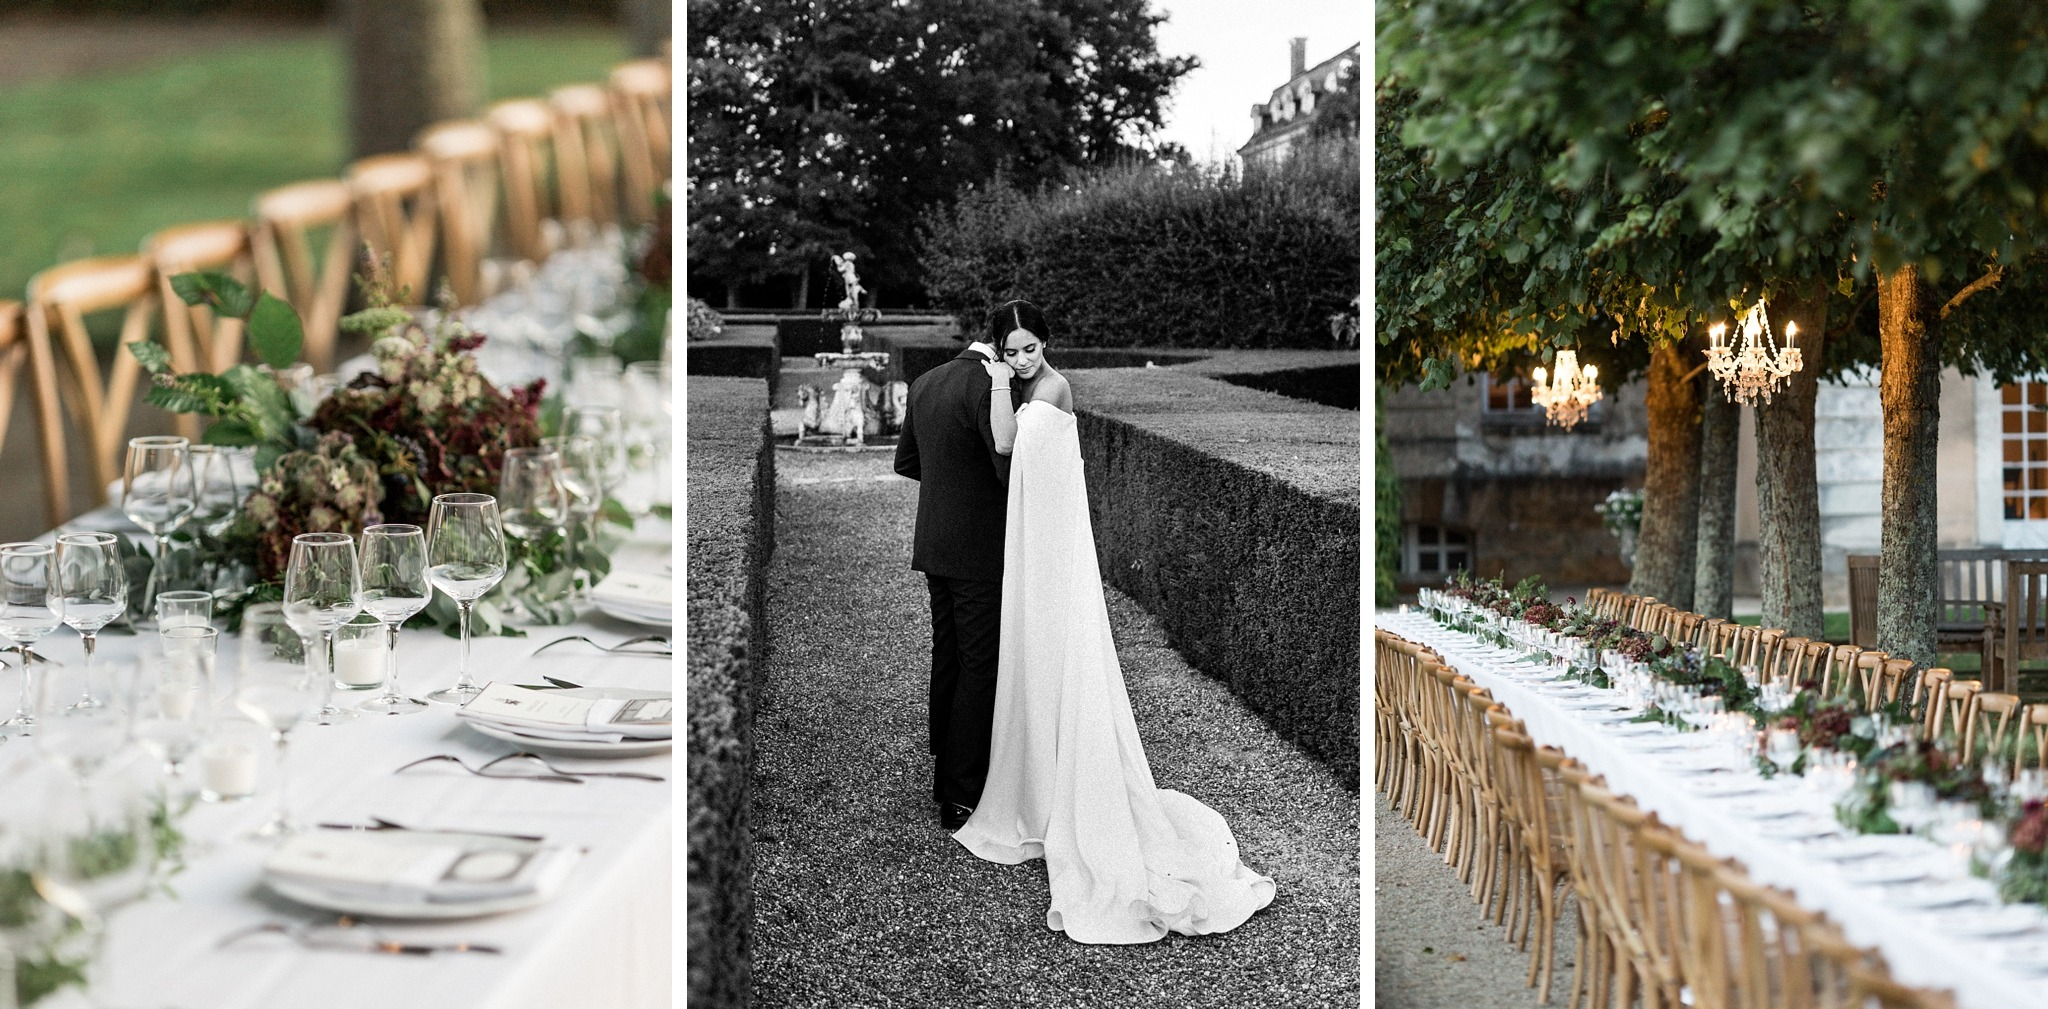 chateau-wedding-france-chanel-eric-as-seen-on-vogue-with-sarah-falugo-photographer_0188